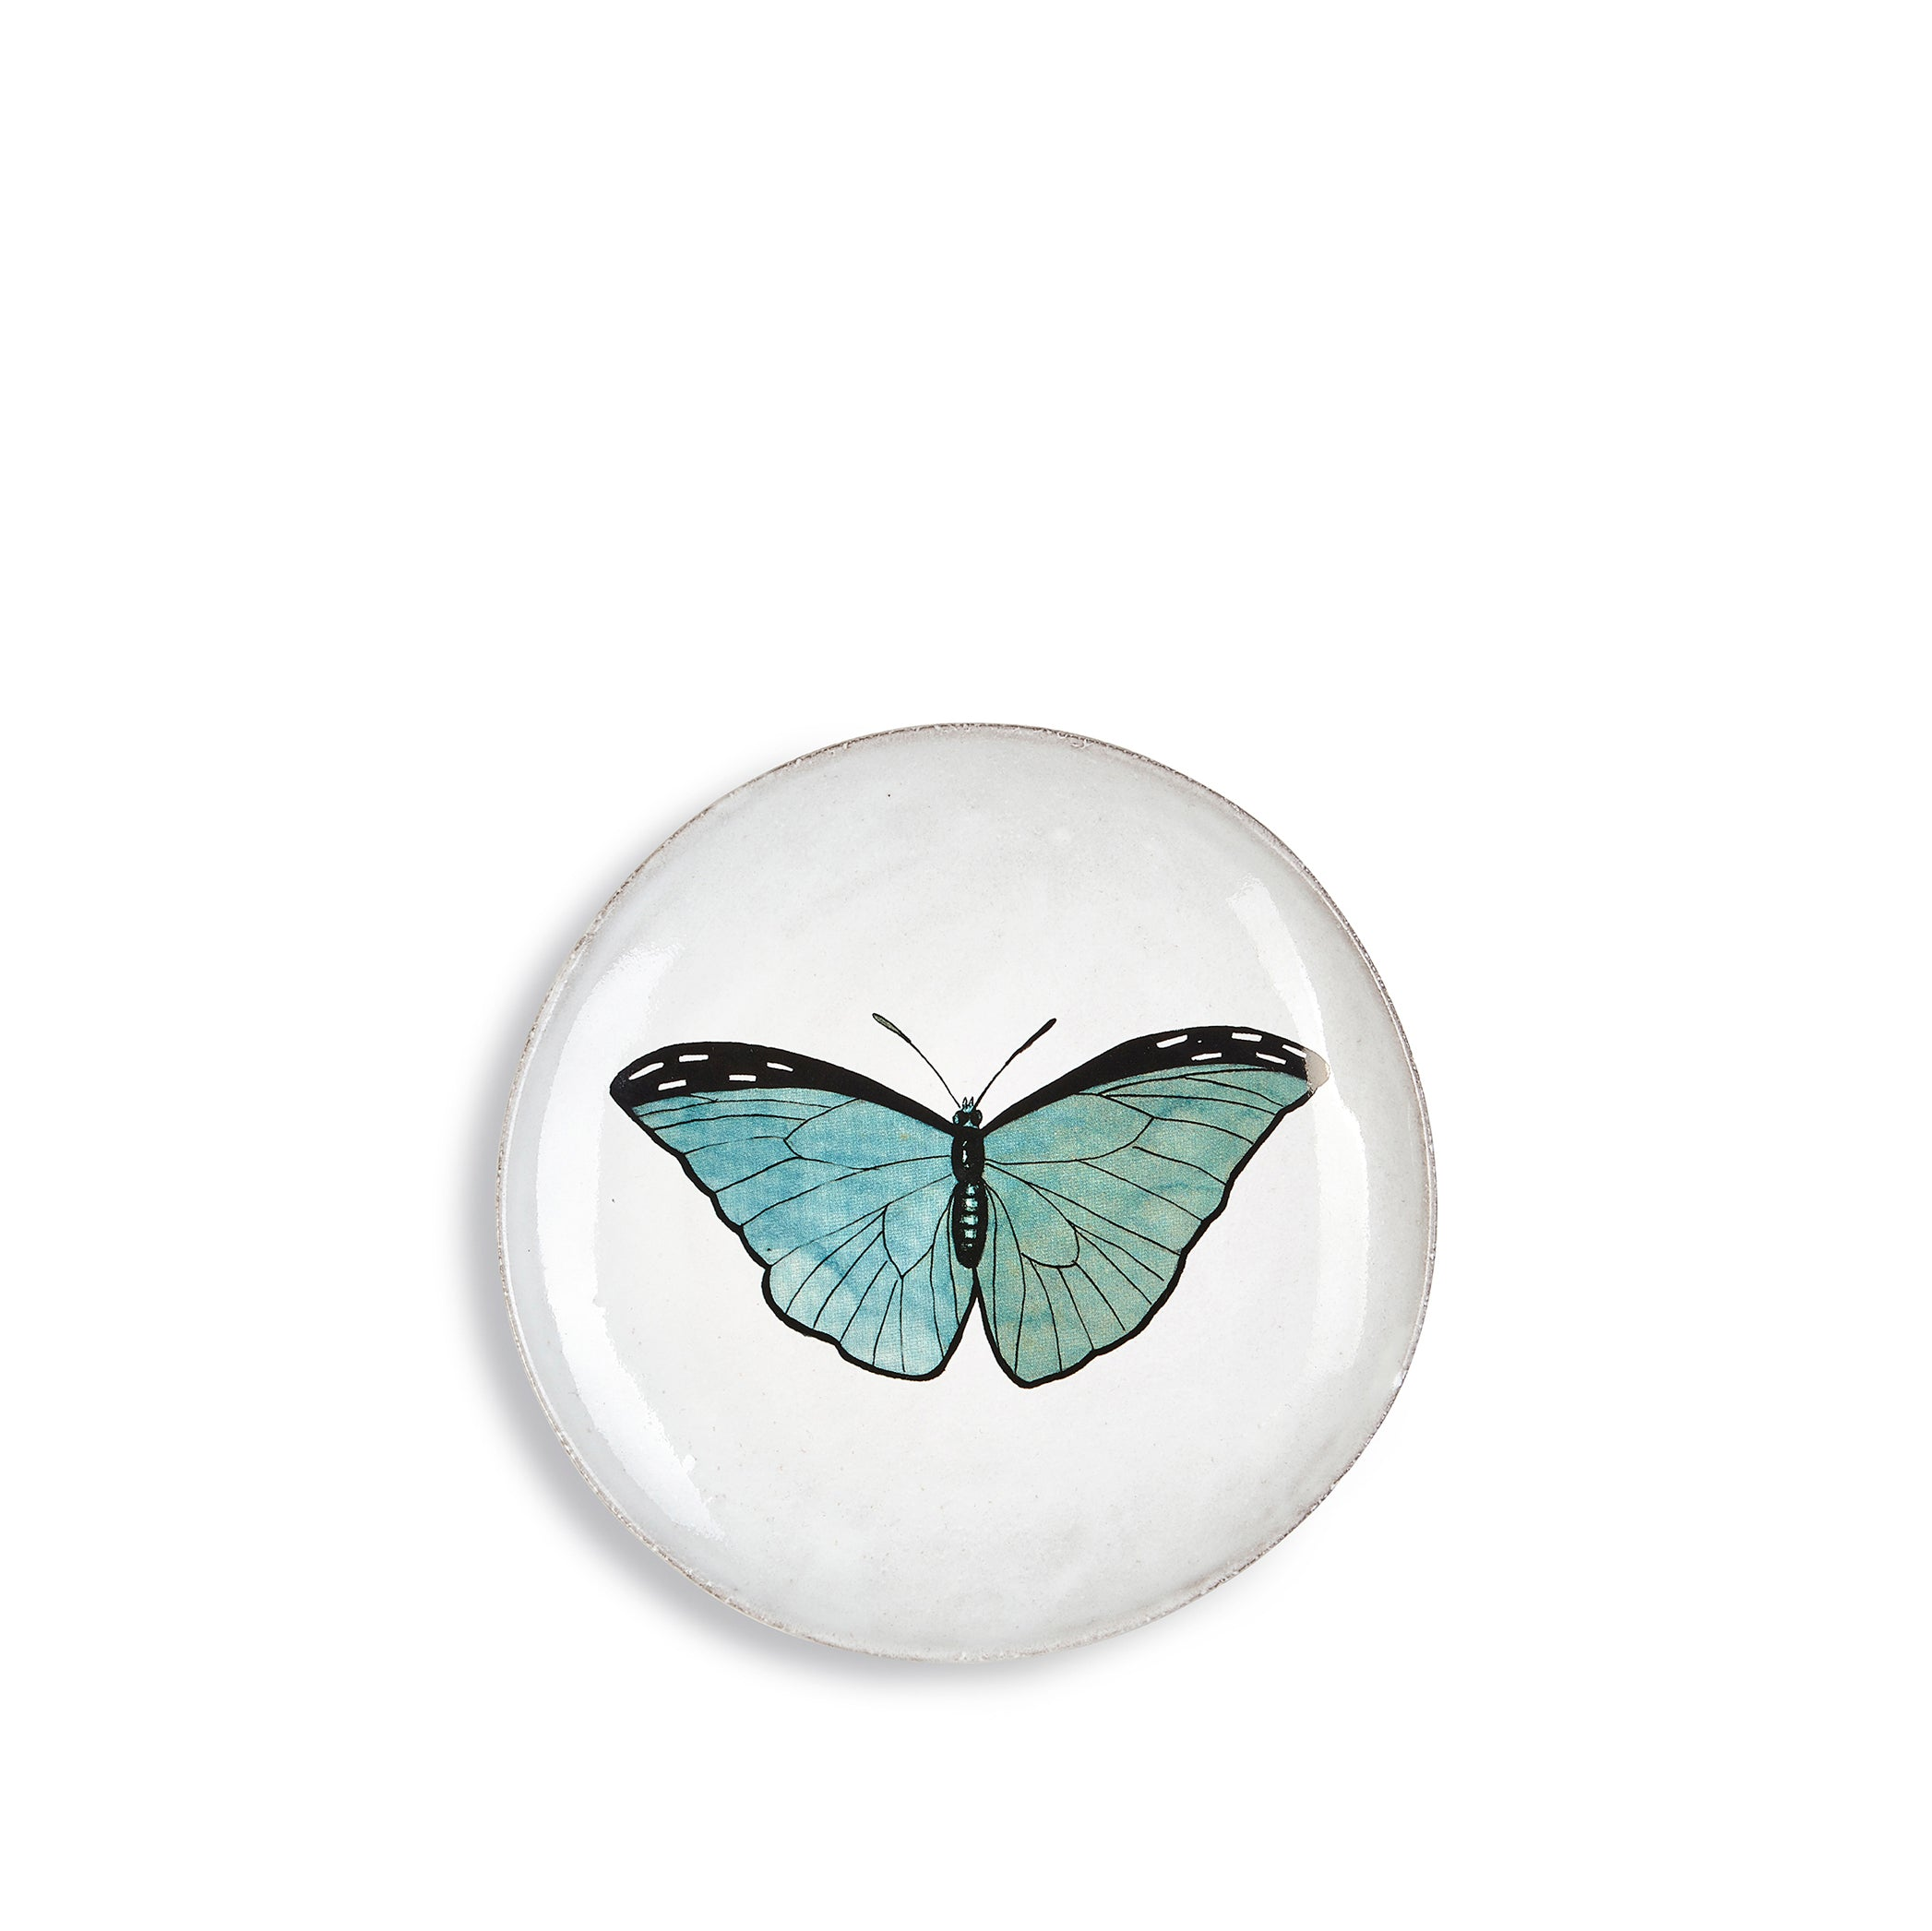 Blue Butterfly Dinner Plate by Astier de Villatte